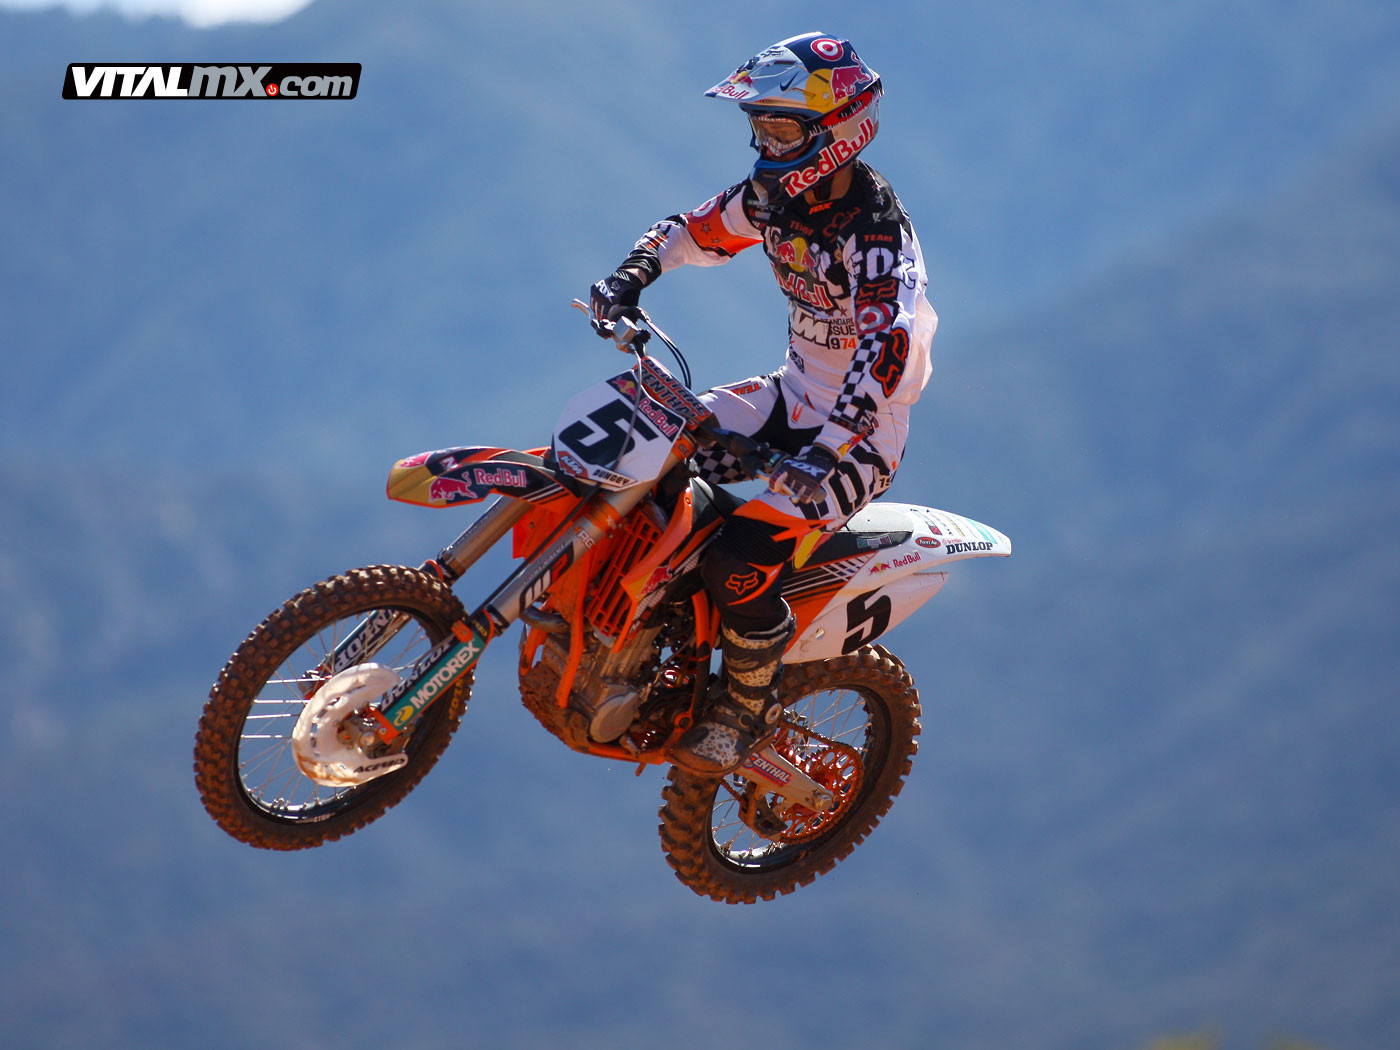 Red Bull Wallpaper Hd Iphone Ryan Dungey Ktm Wallpapers Motocross Pictures Vital Mx